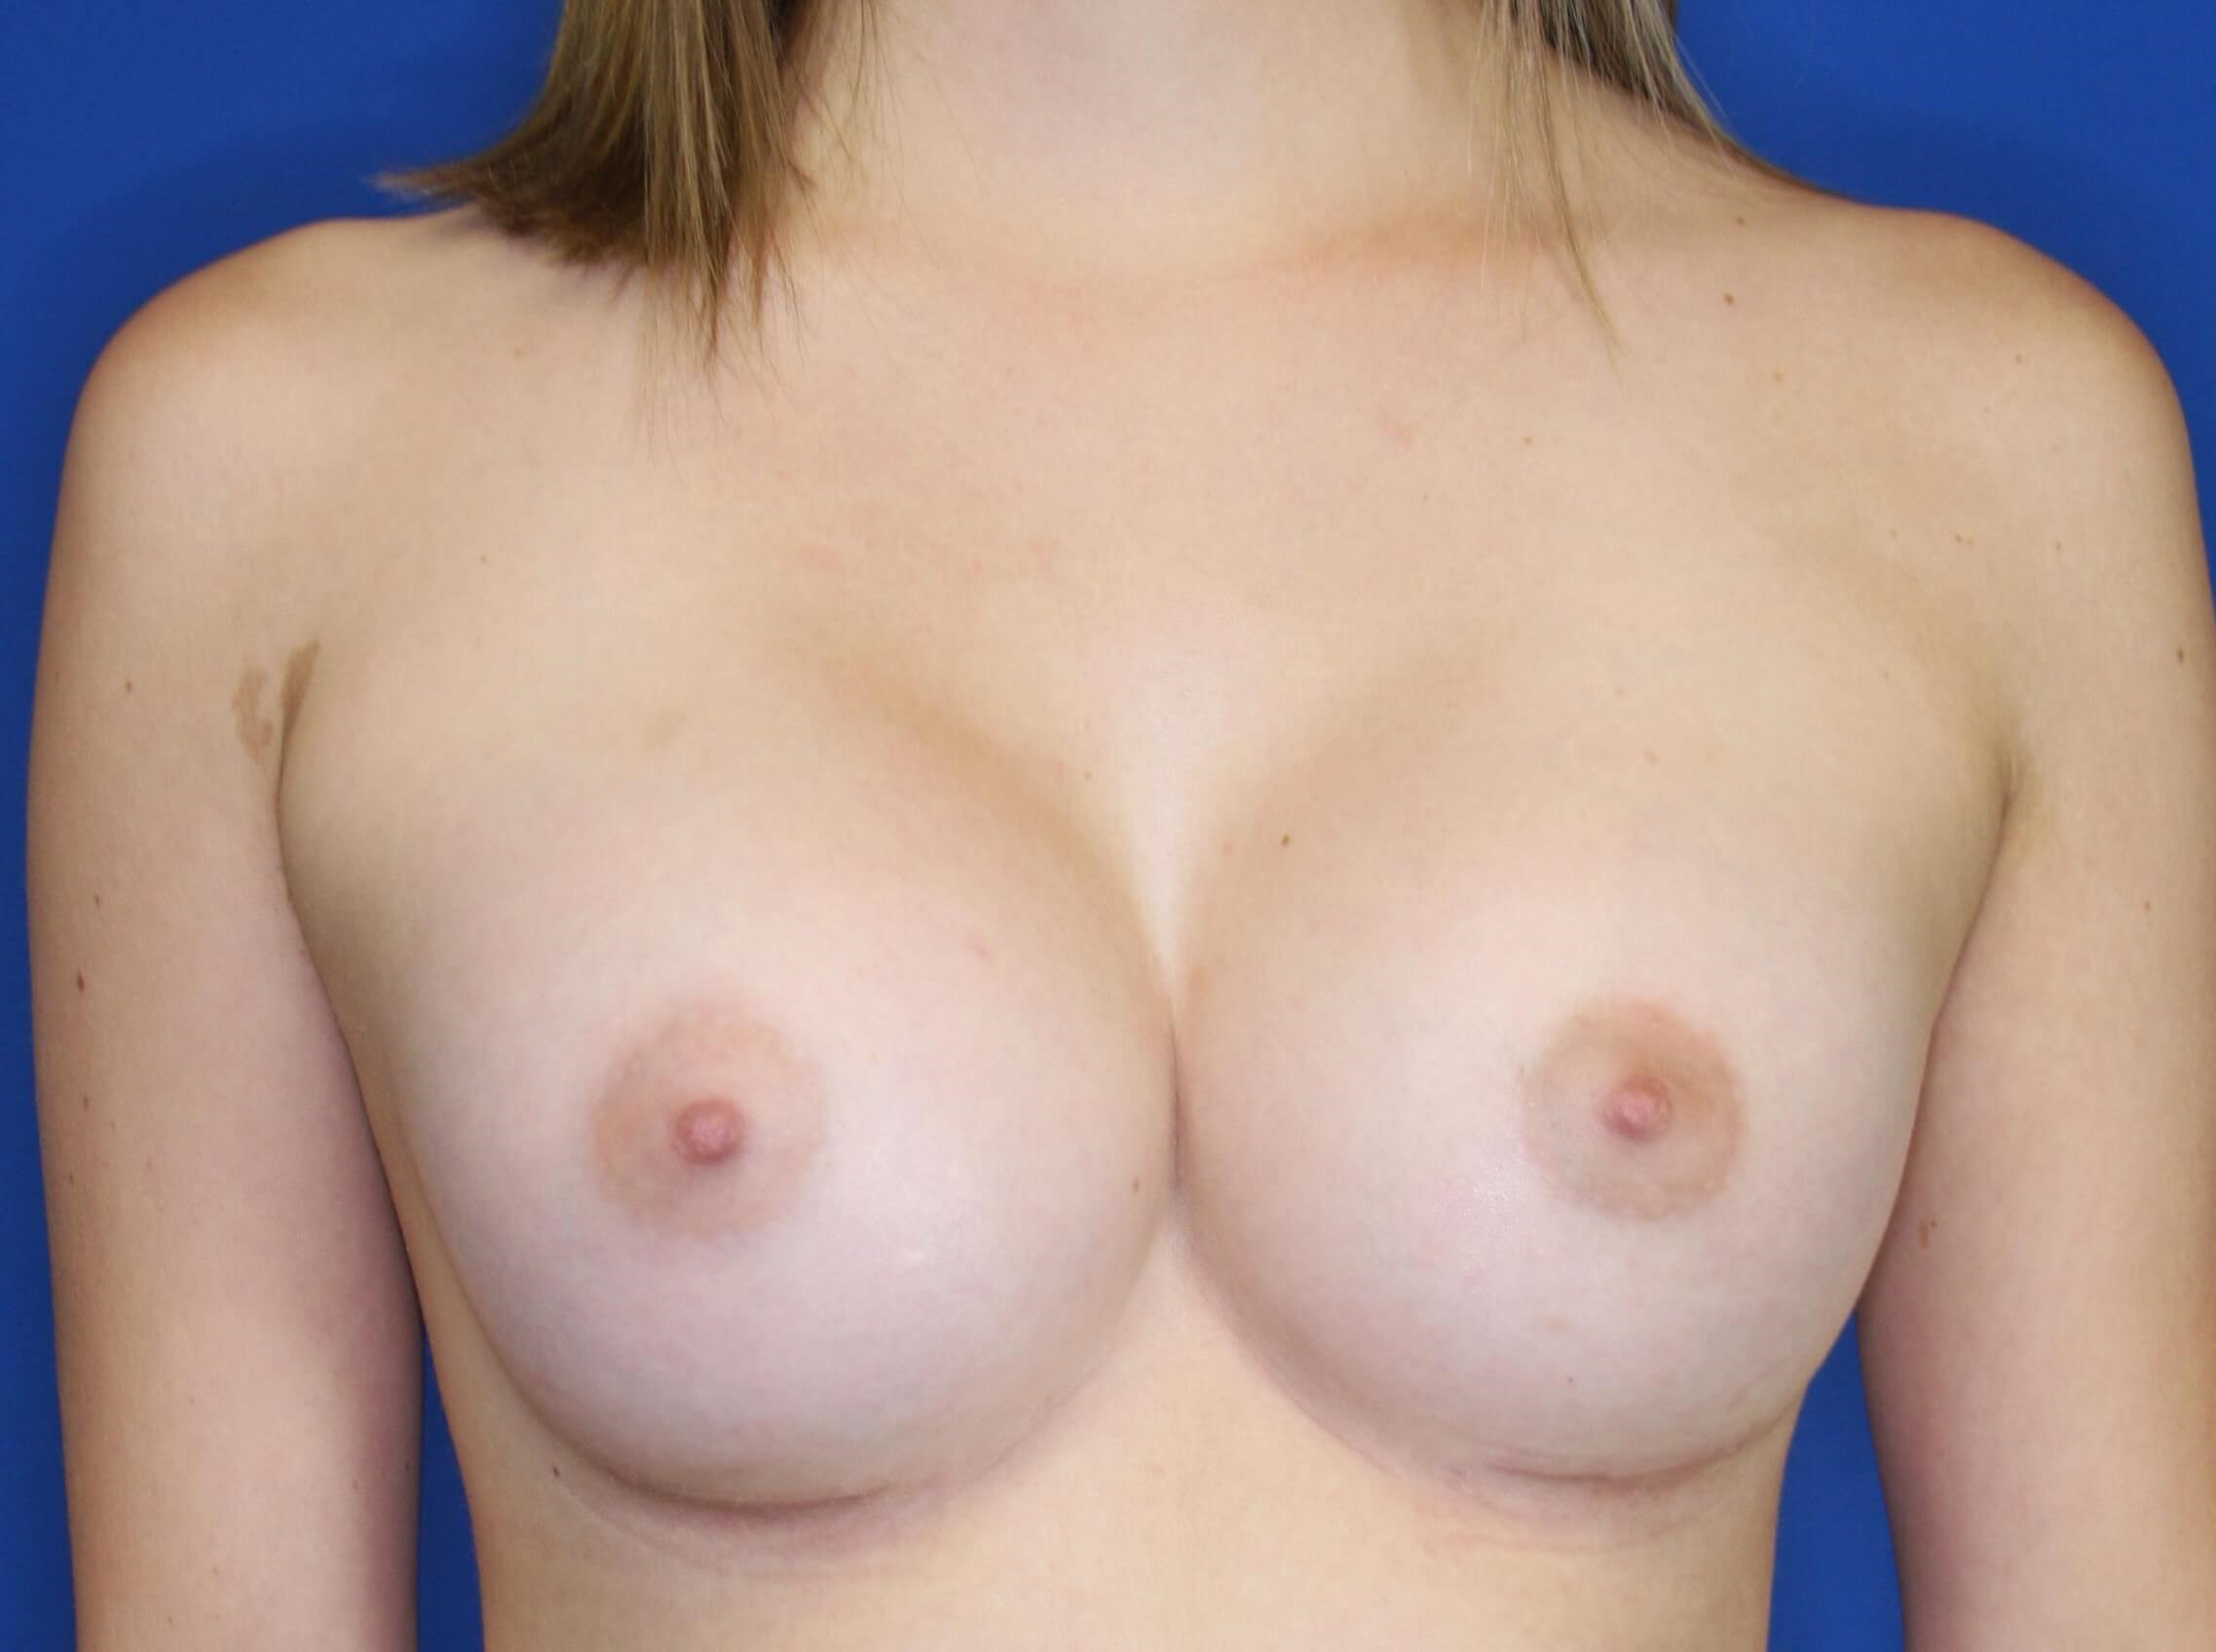 Breast Augmentation 6 weeks postop